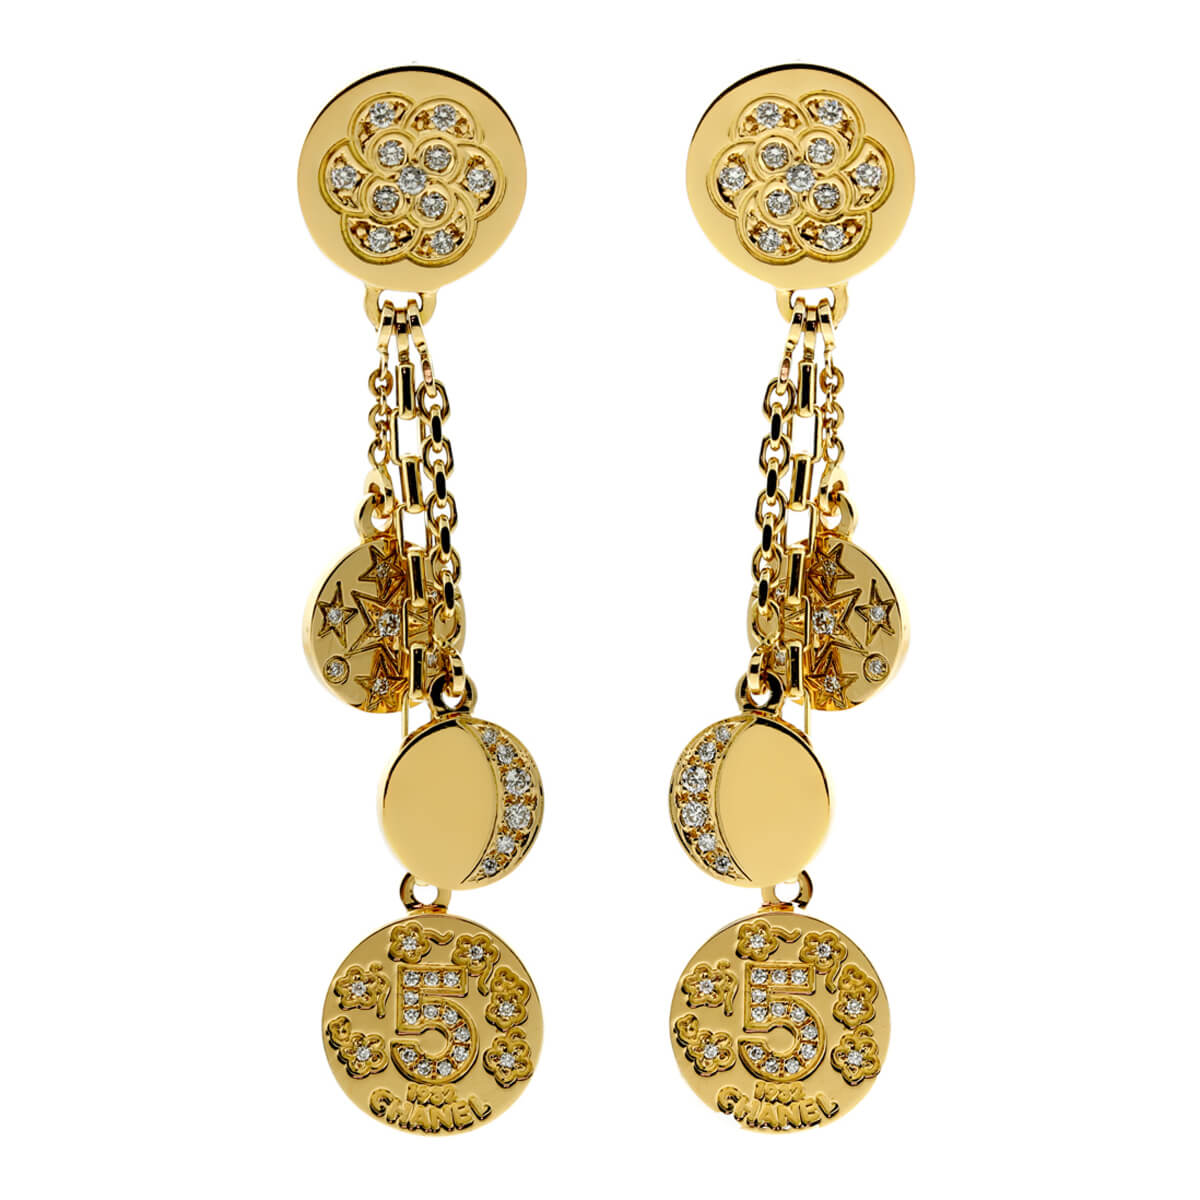 Chanel Charm Diamond Gold Earrings